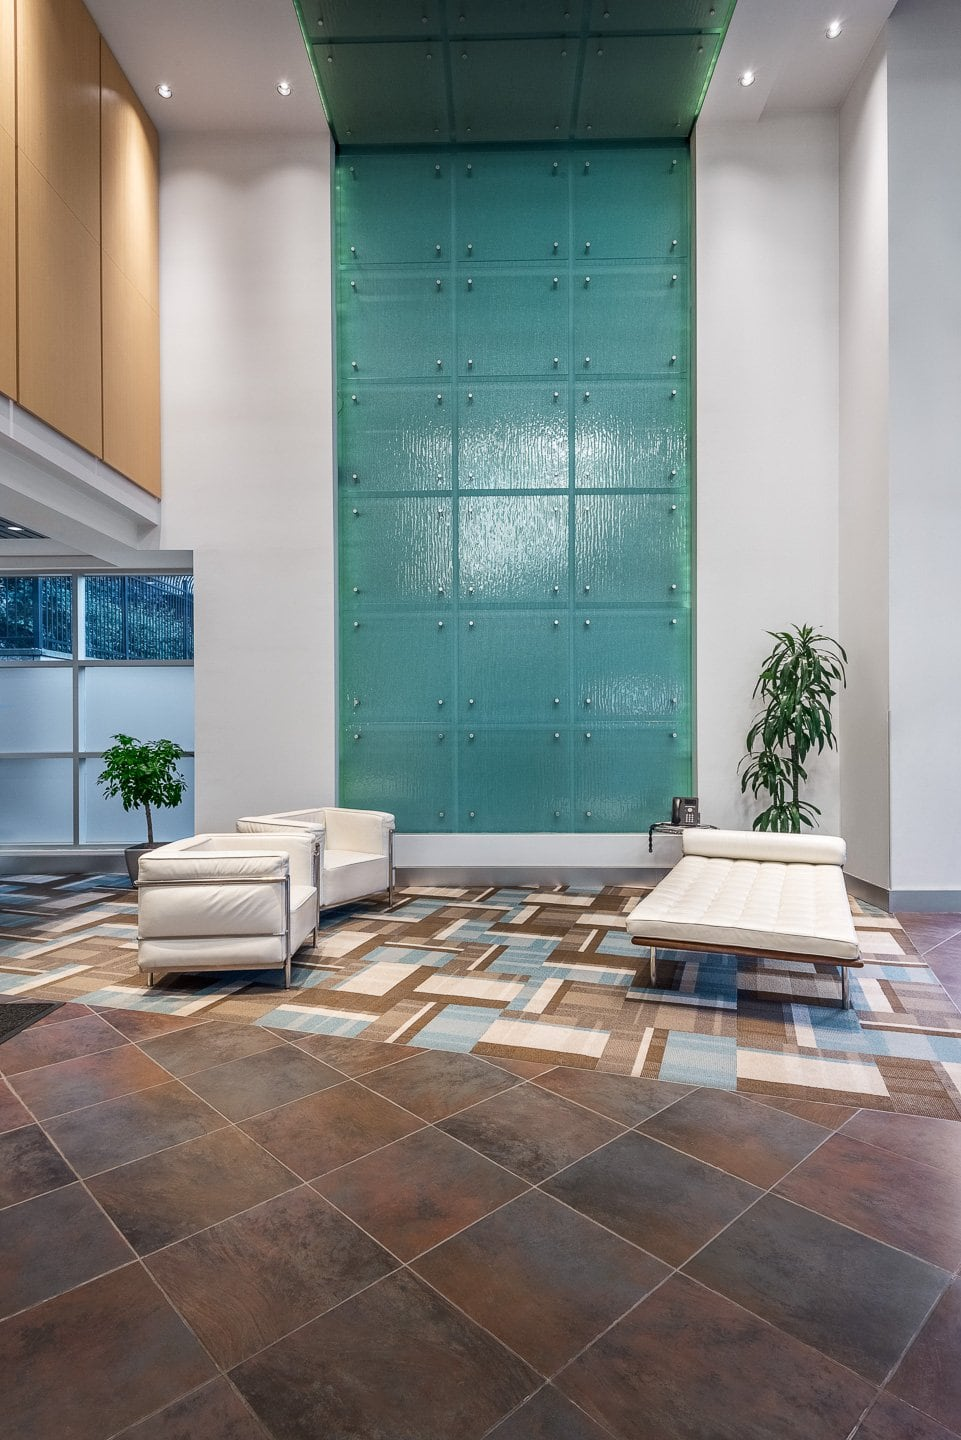 Real estate photography of a commercial building lobby in Calgary